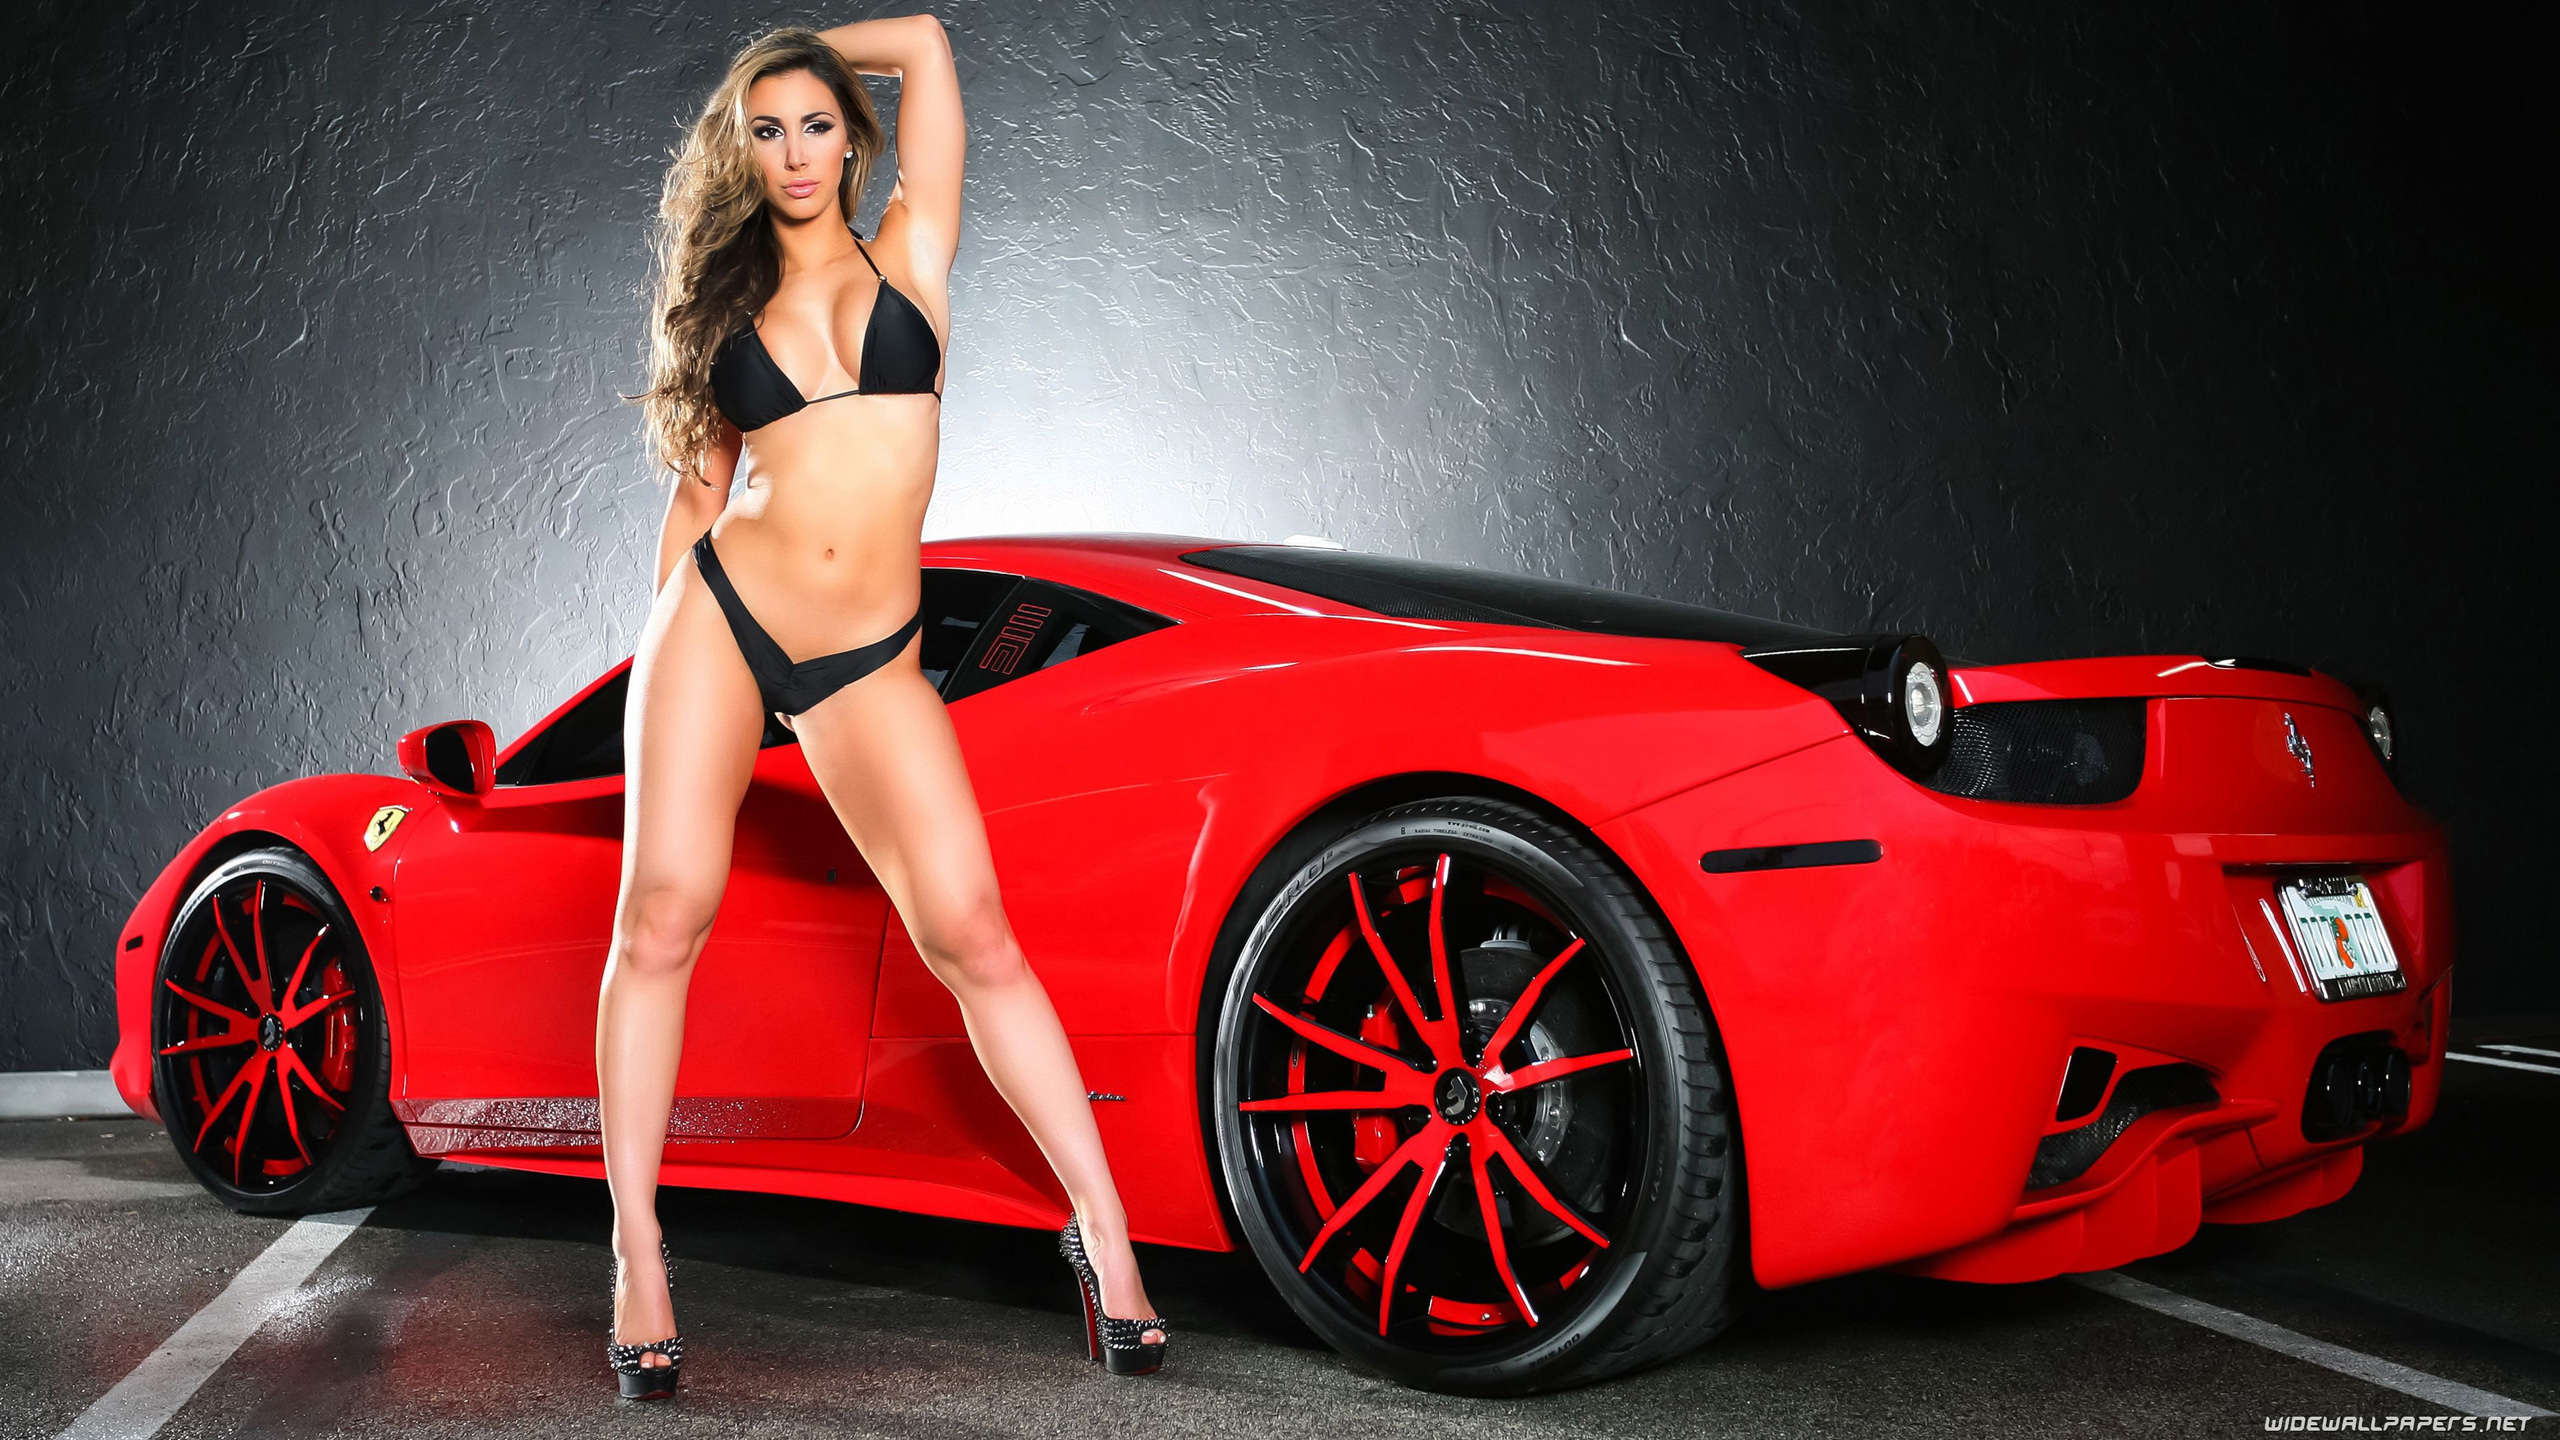 Ferrari Cars And Girls Desktop Wallpapers 4k Ultra Hd